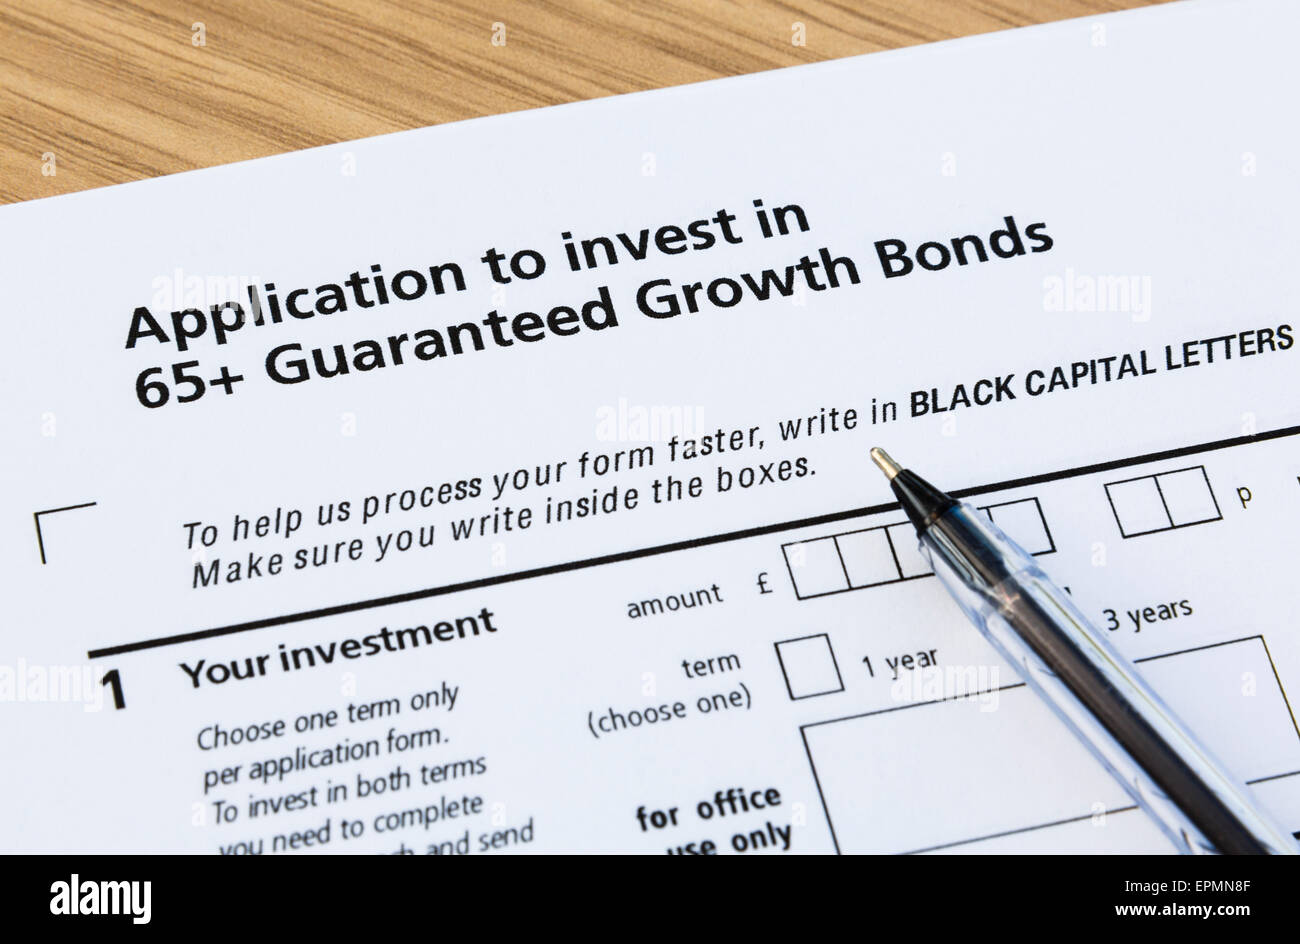 Application form to buy pensioners' 65+ Guaranteed Growth Bonds and a black ballpoint pen for completing. England - Stock Image